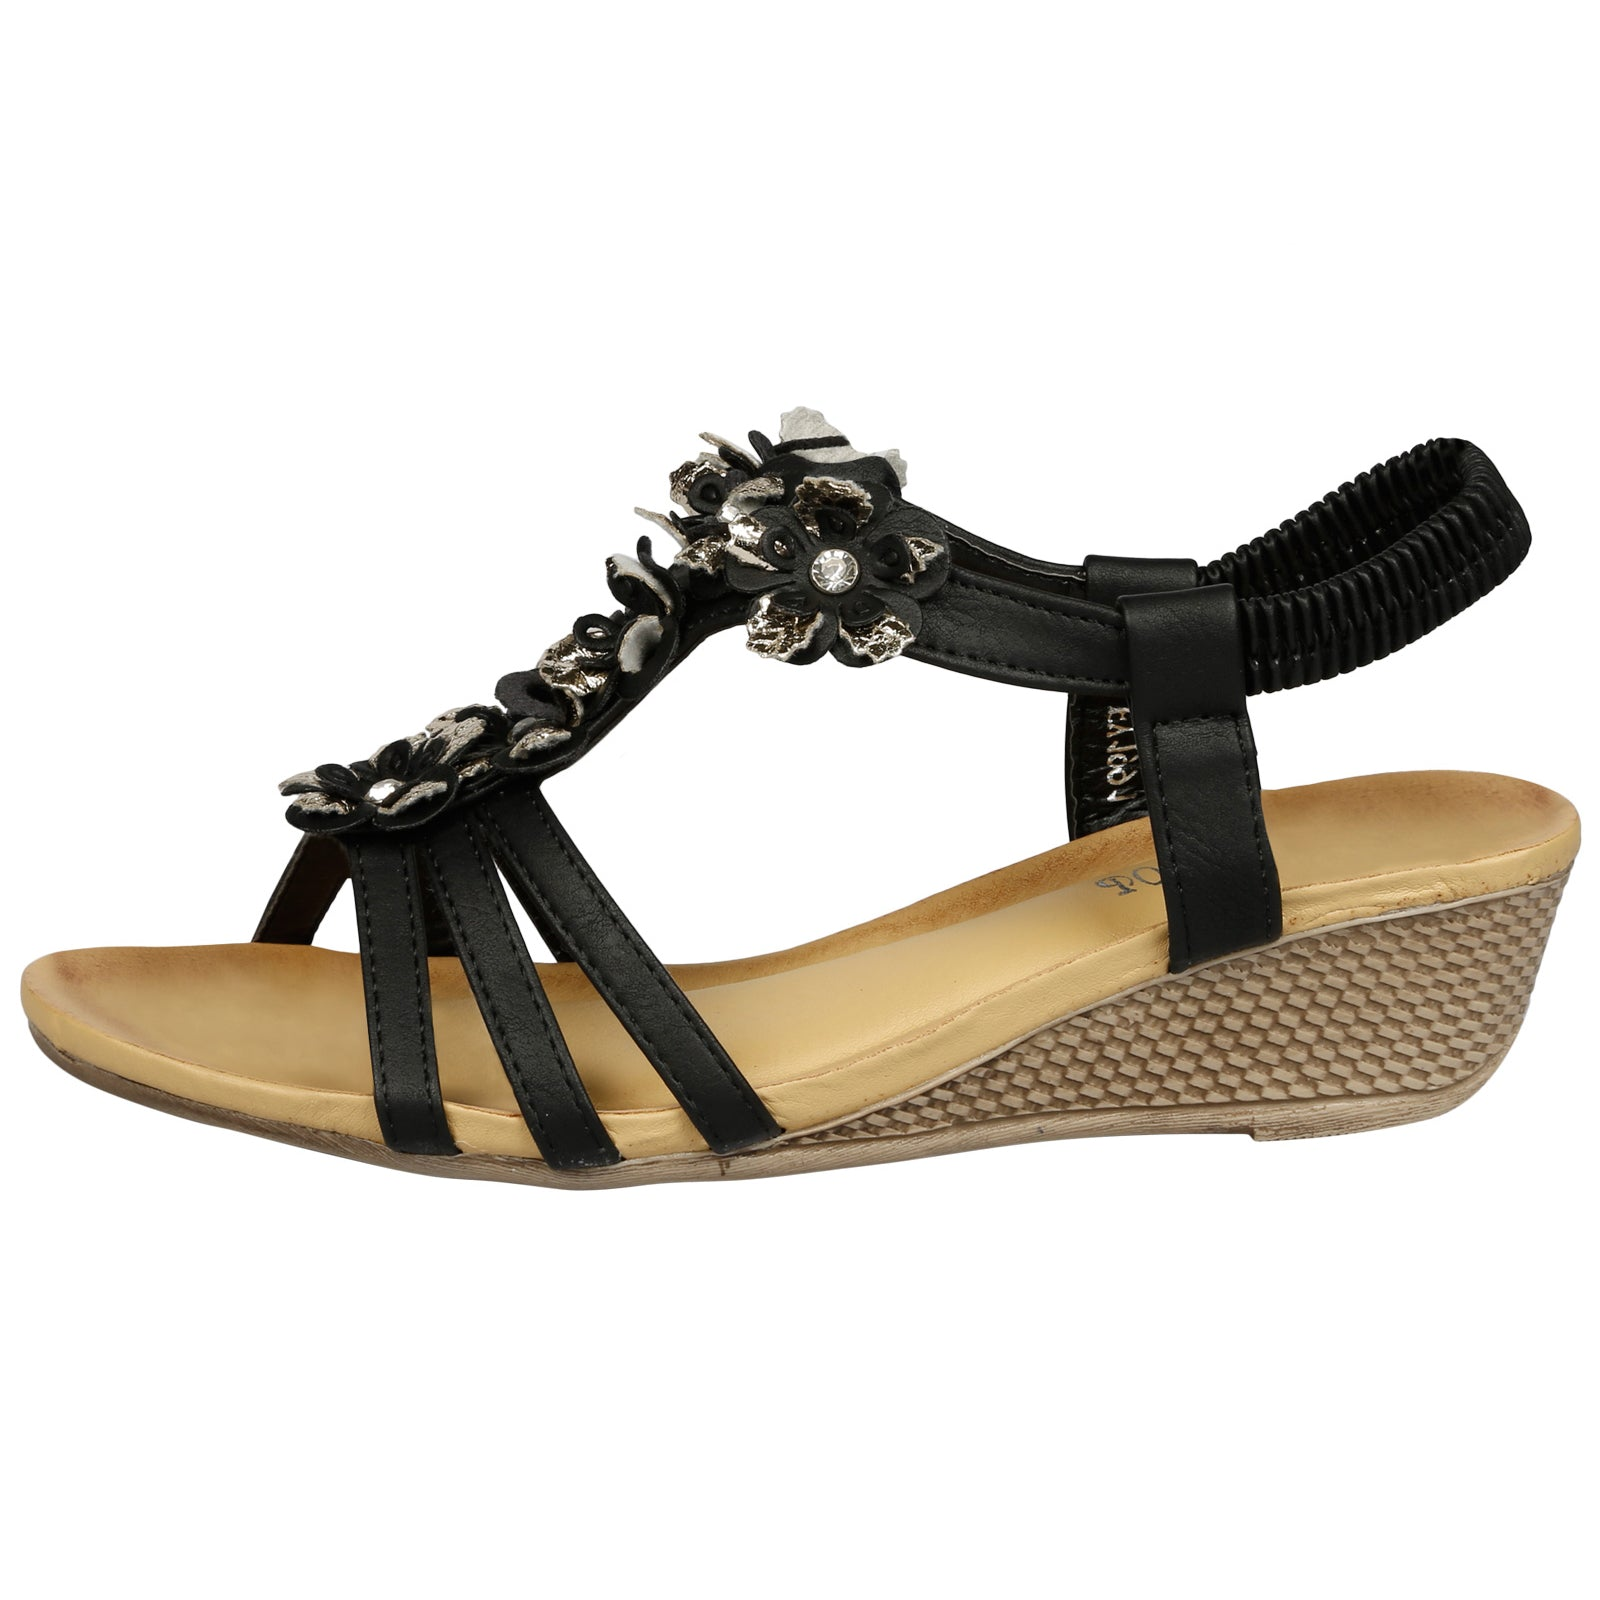 Leilani Low Wedge Floral Sandals in Black Faux Leather - Feet First Fashion